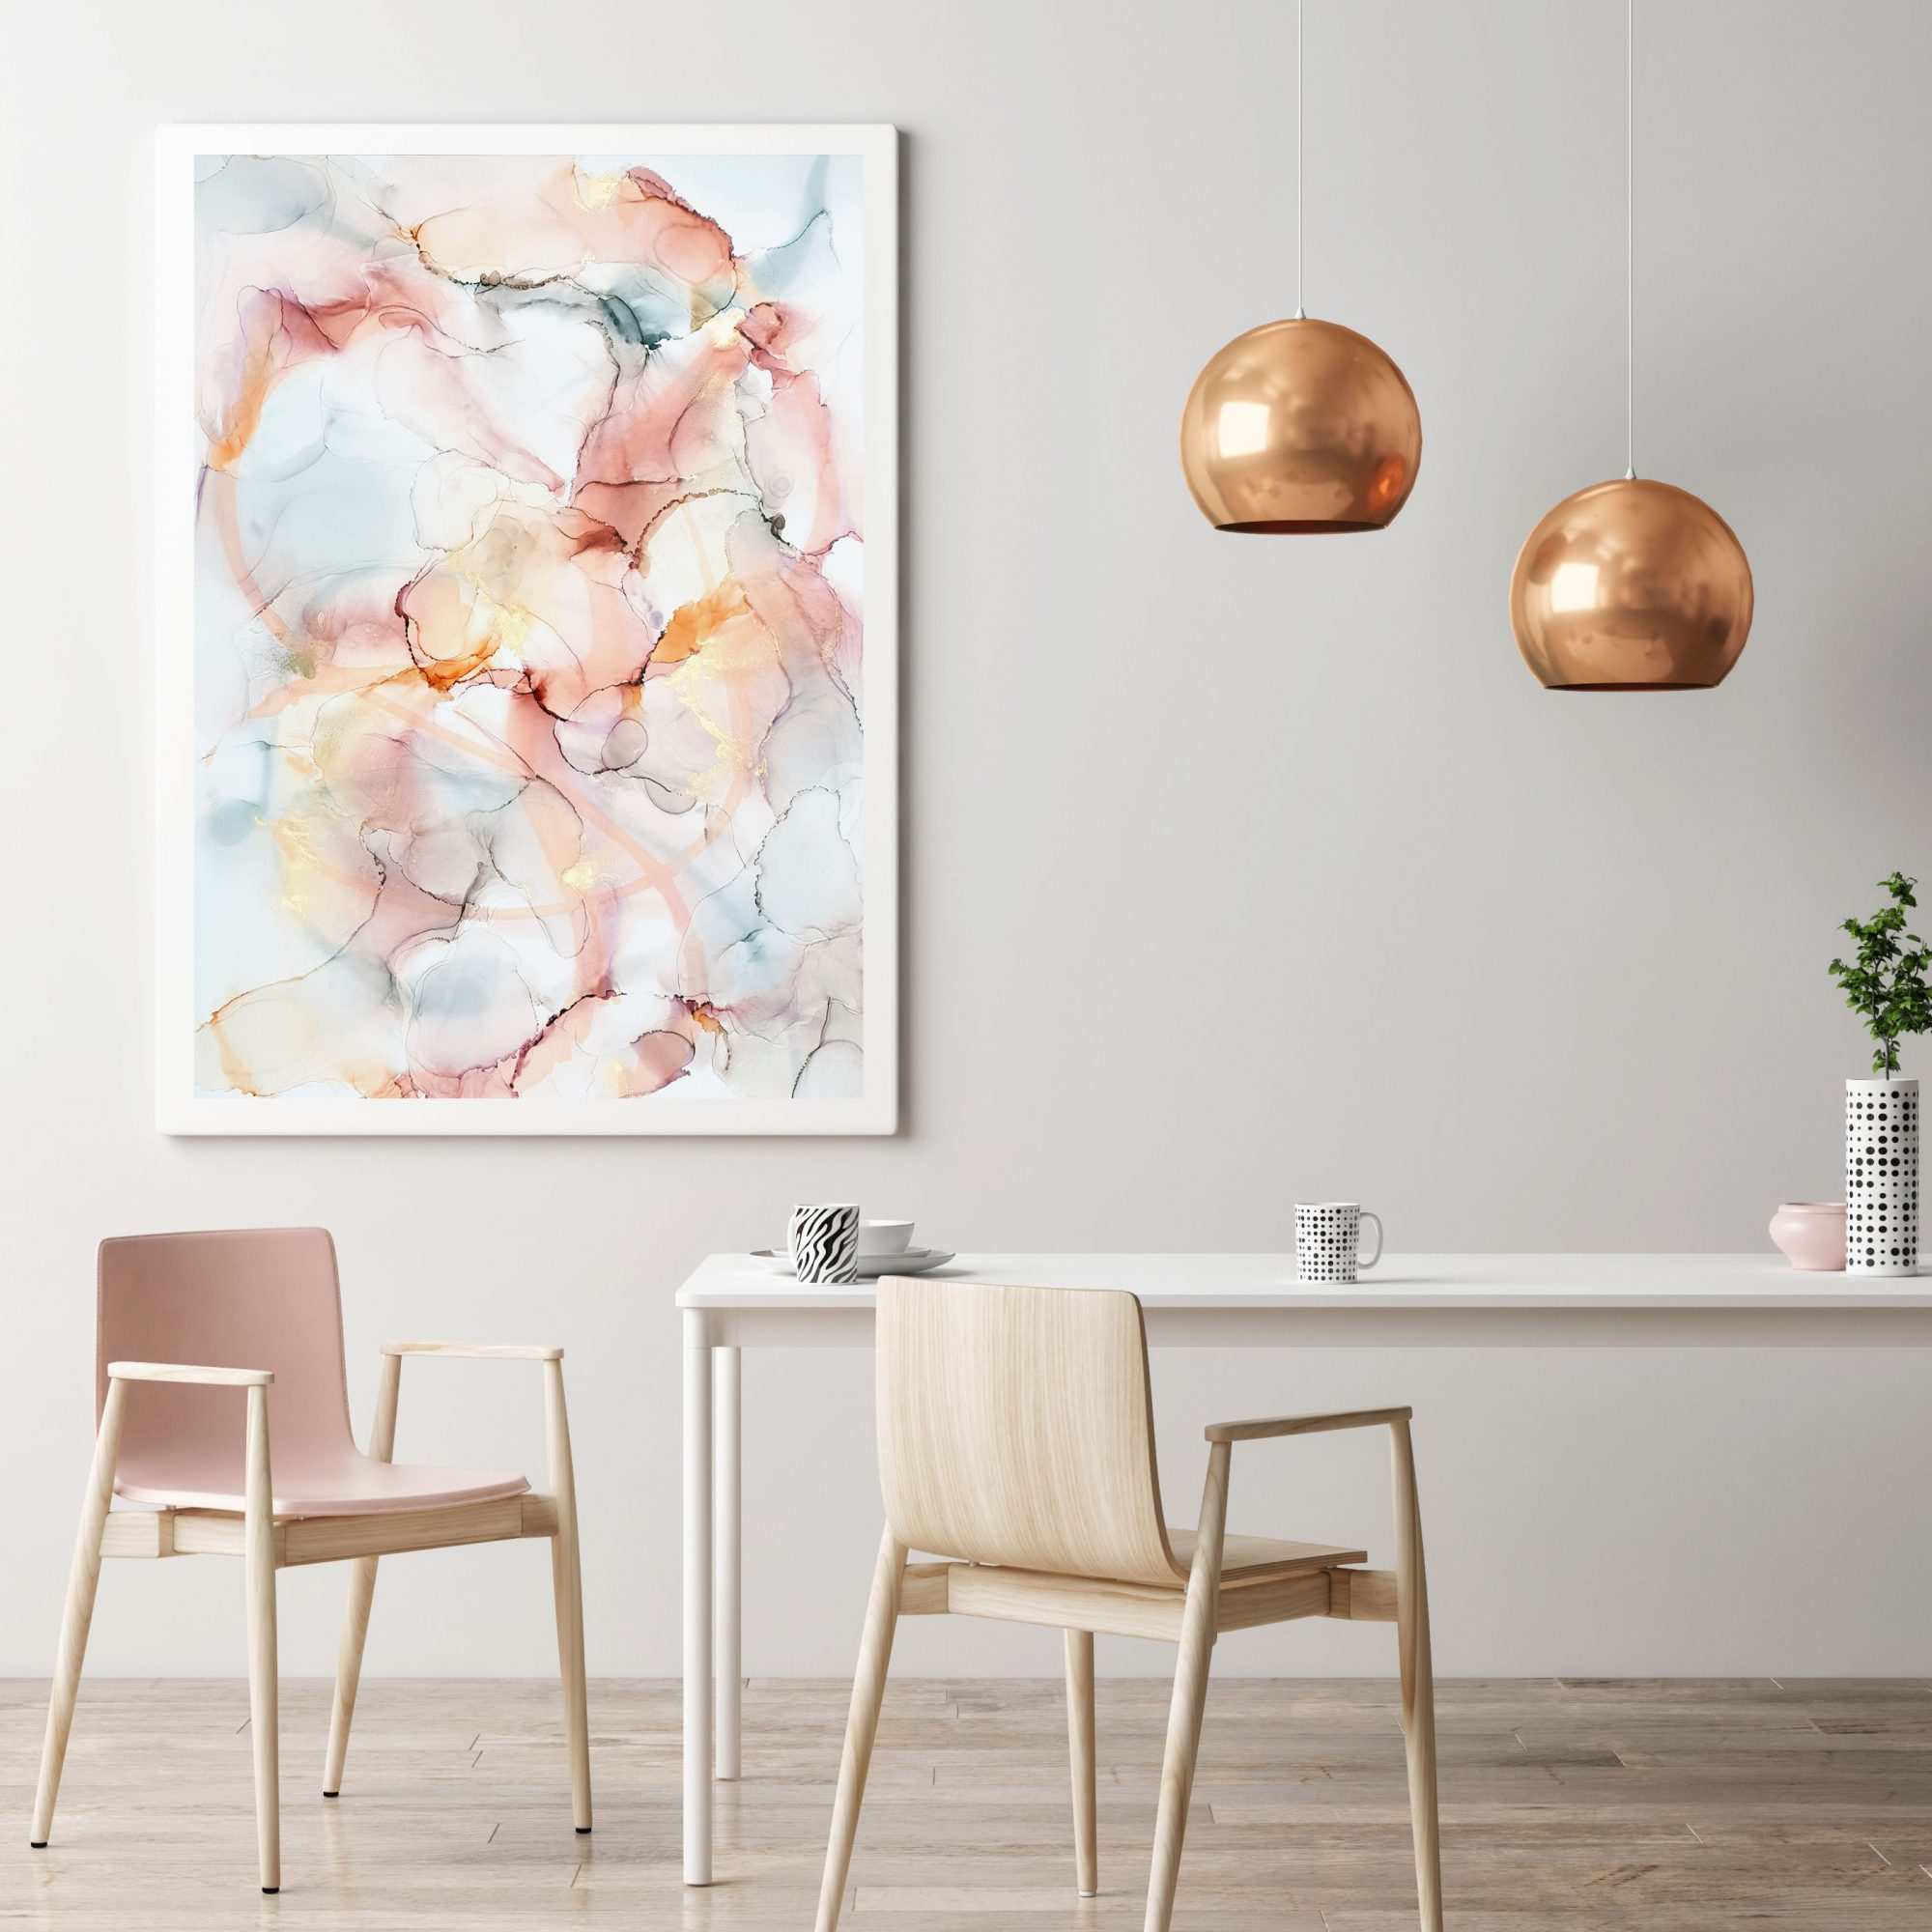 Mock up poster in hipster interior background, Dining room